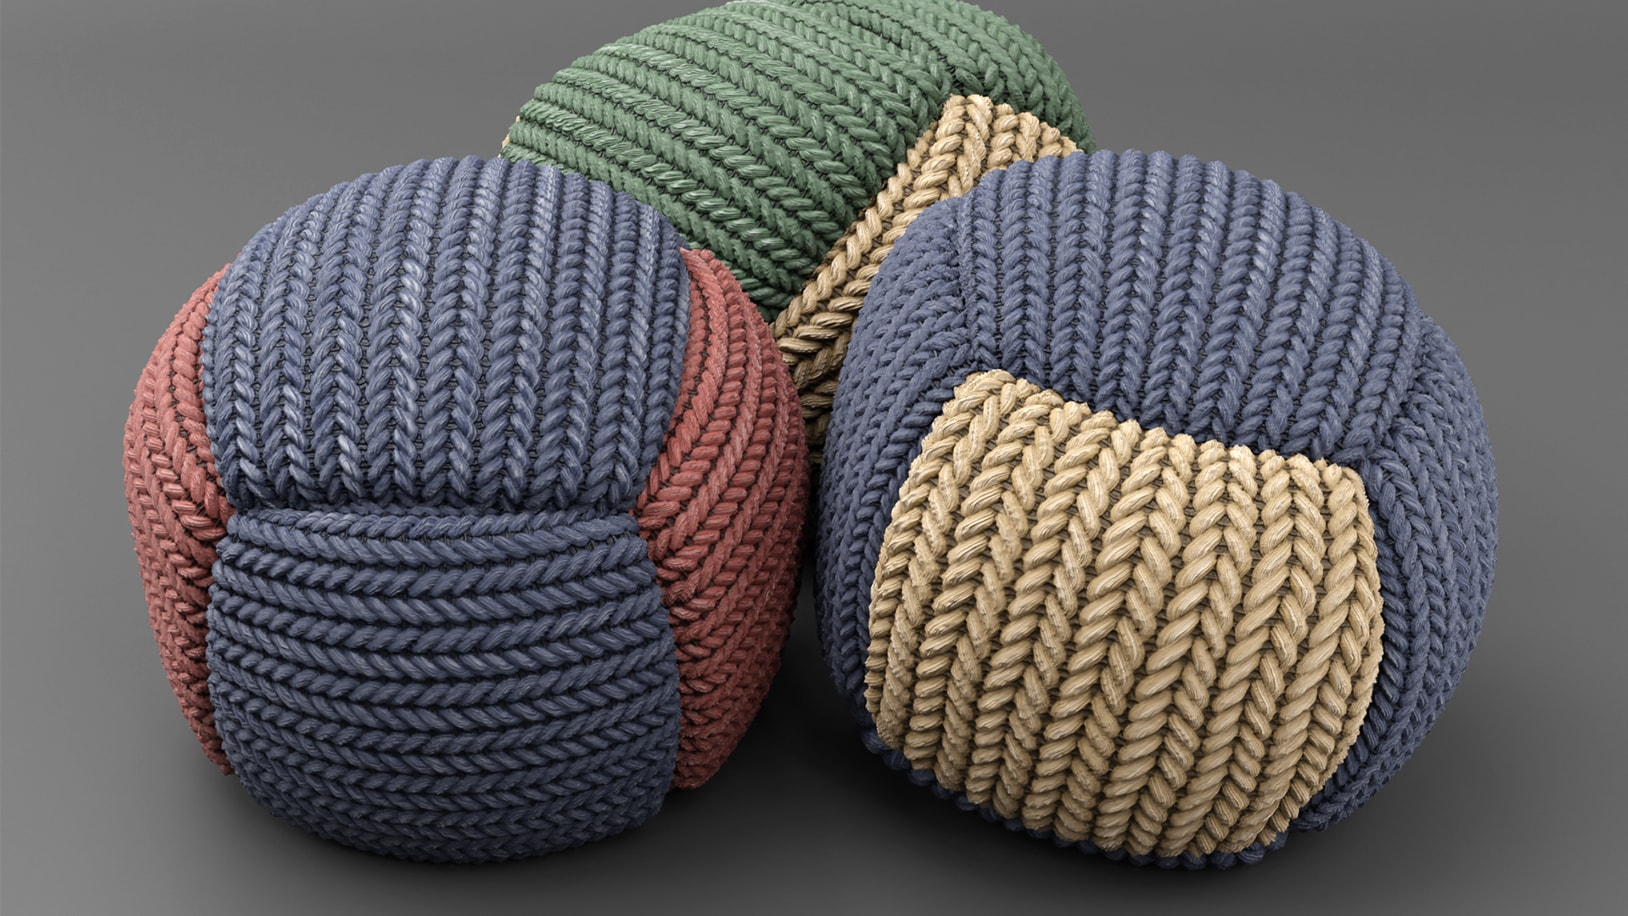 Procedural Wool Shader For Blender Flippednormals